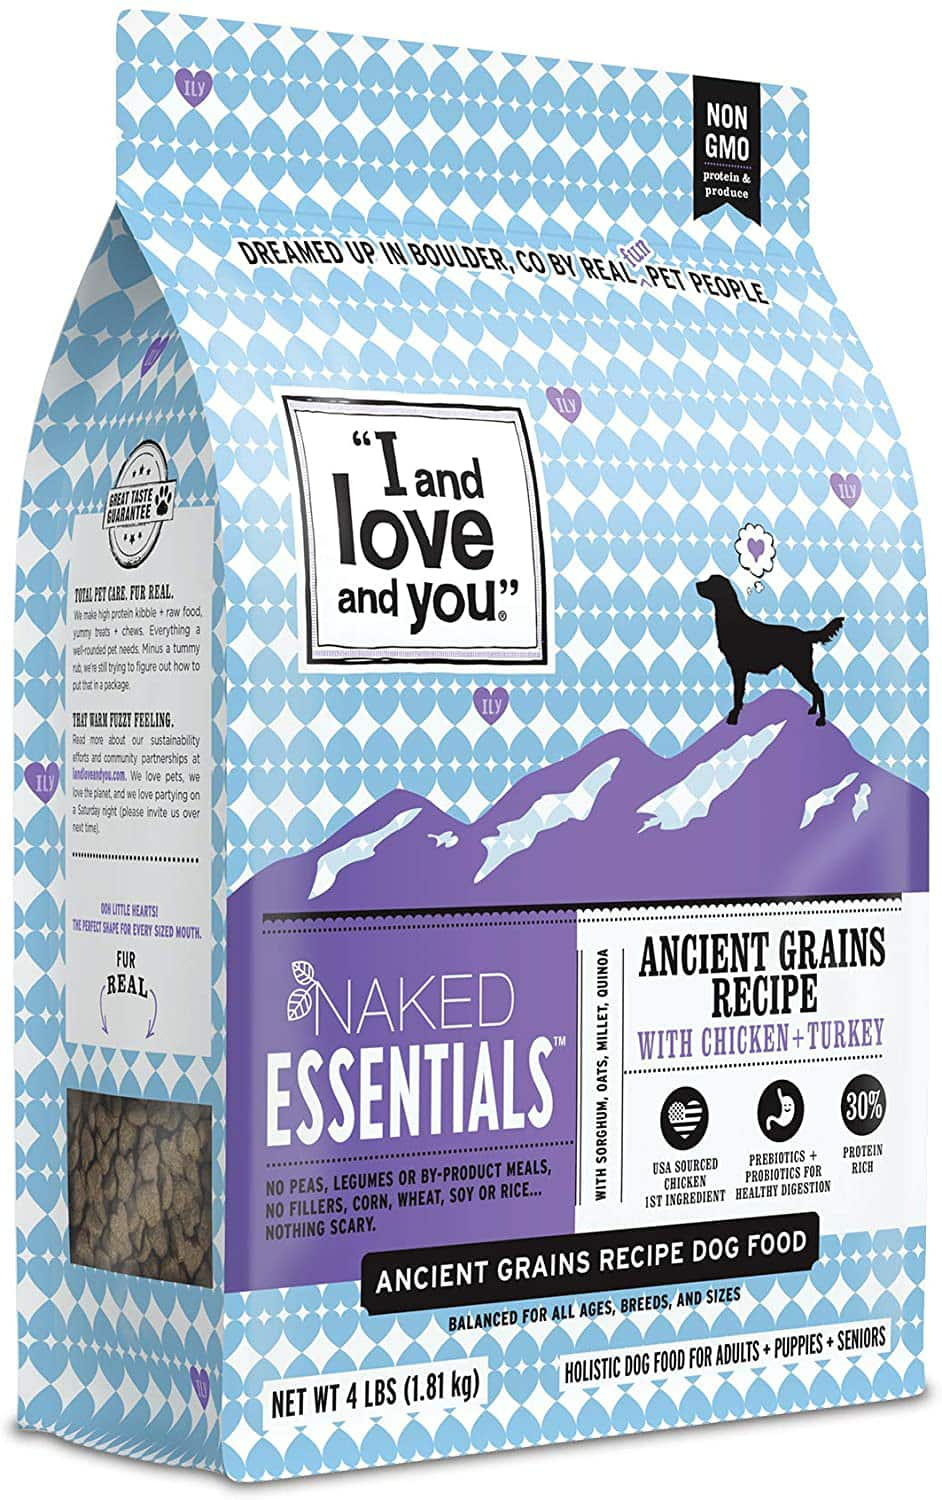 Amazon.com: $5.78 w/ coupon and s&s I and love and you Naked Essentials Dry Dog Food - Ancient Grains Kibble, Chicken + Turkey, 4-Pound Bag (Trial Size): Pet Supplies $5.78